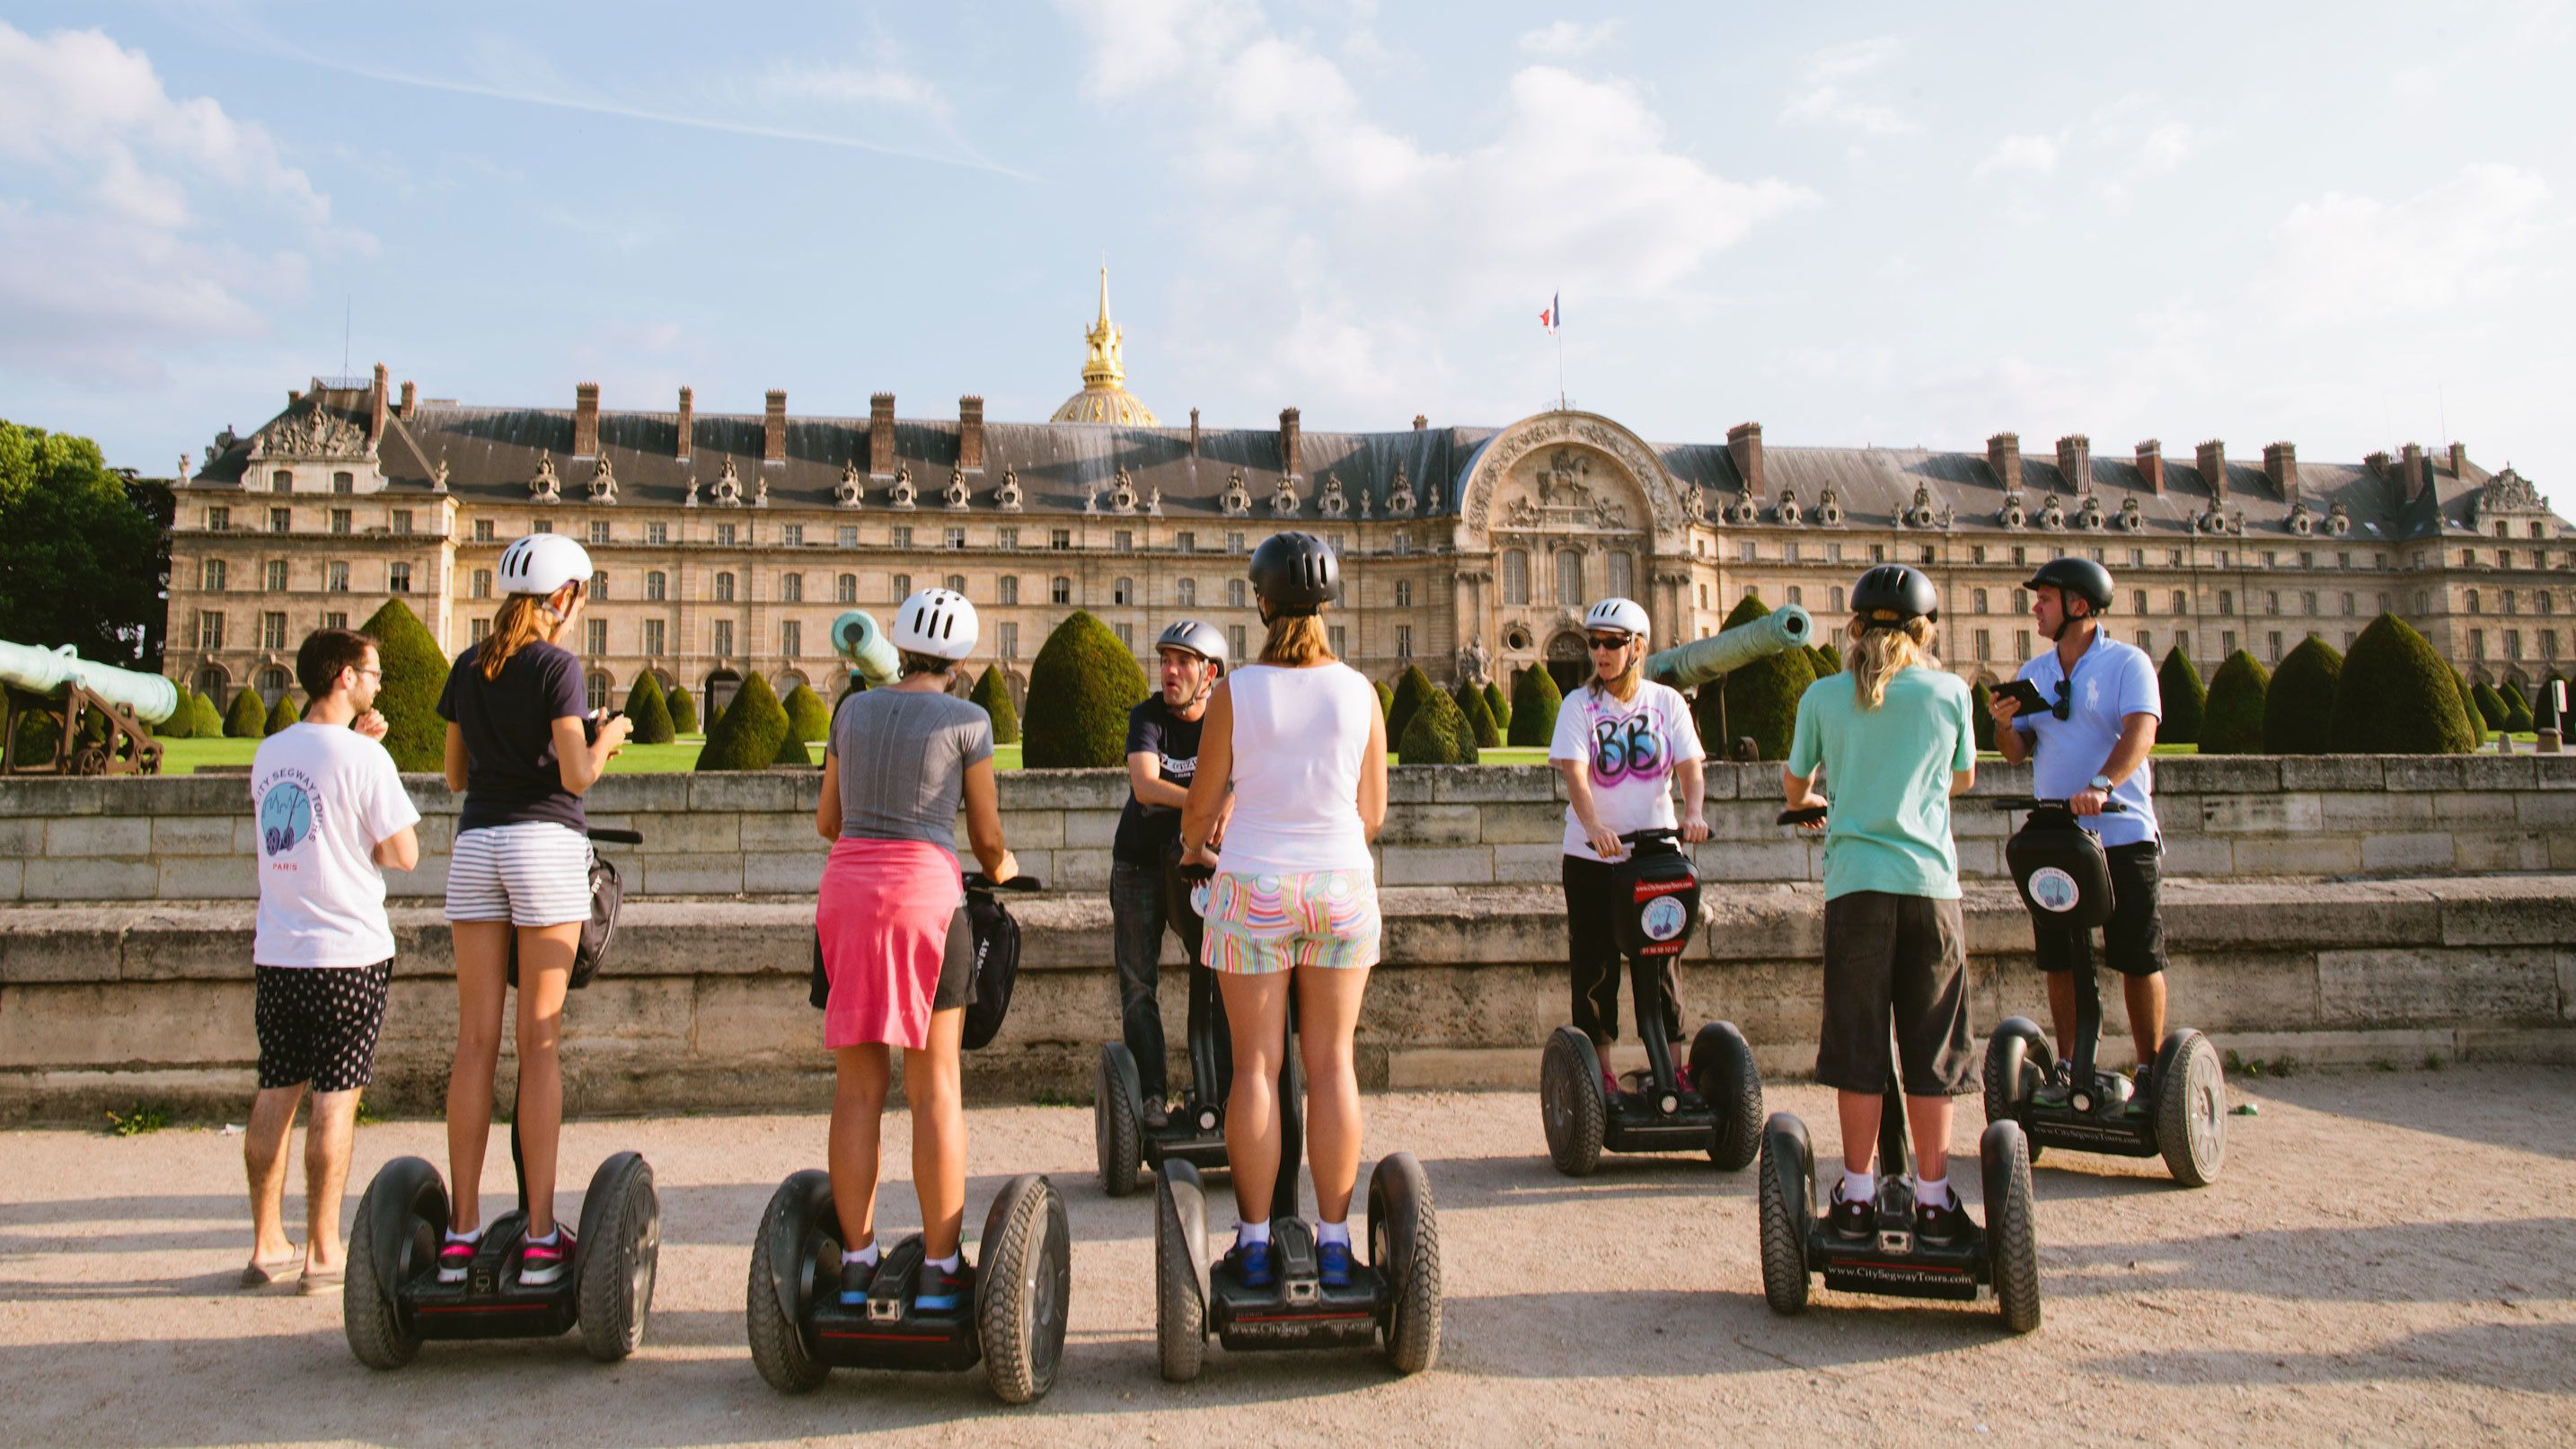 Segway group outside a building in Paris